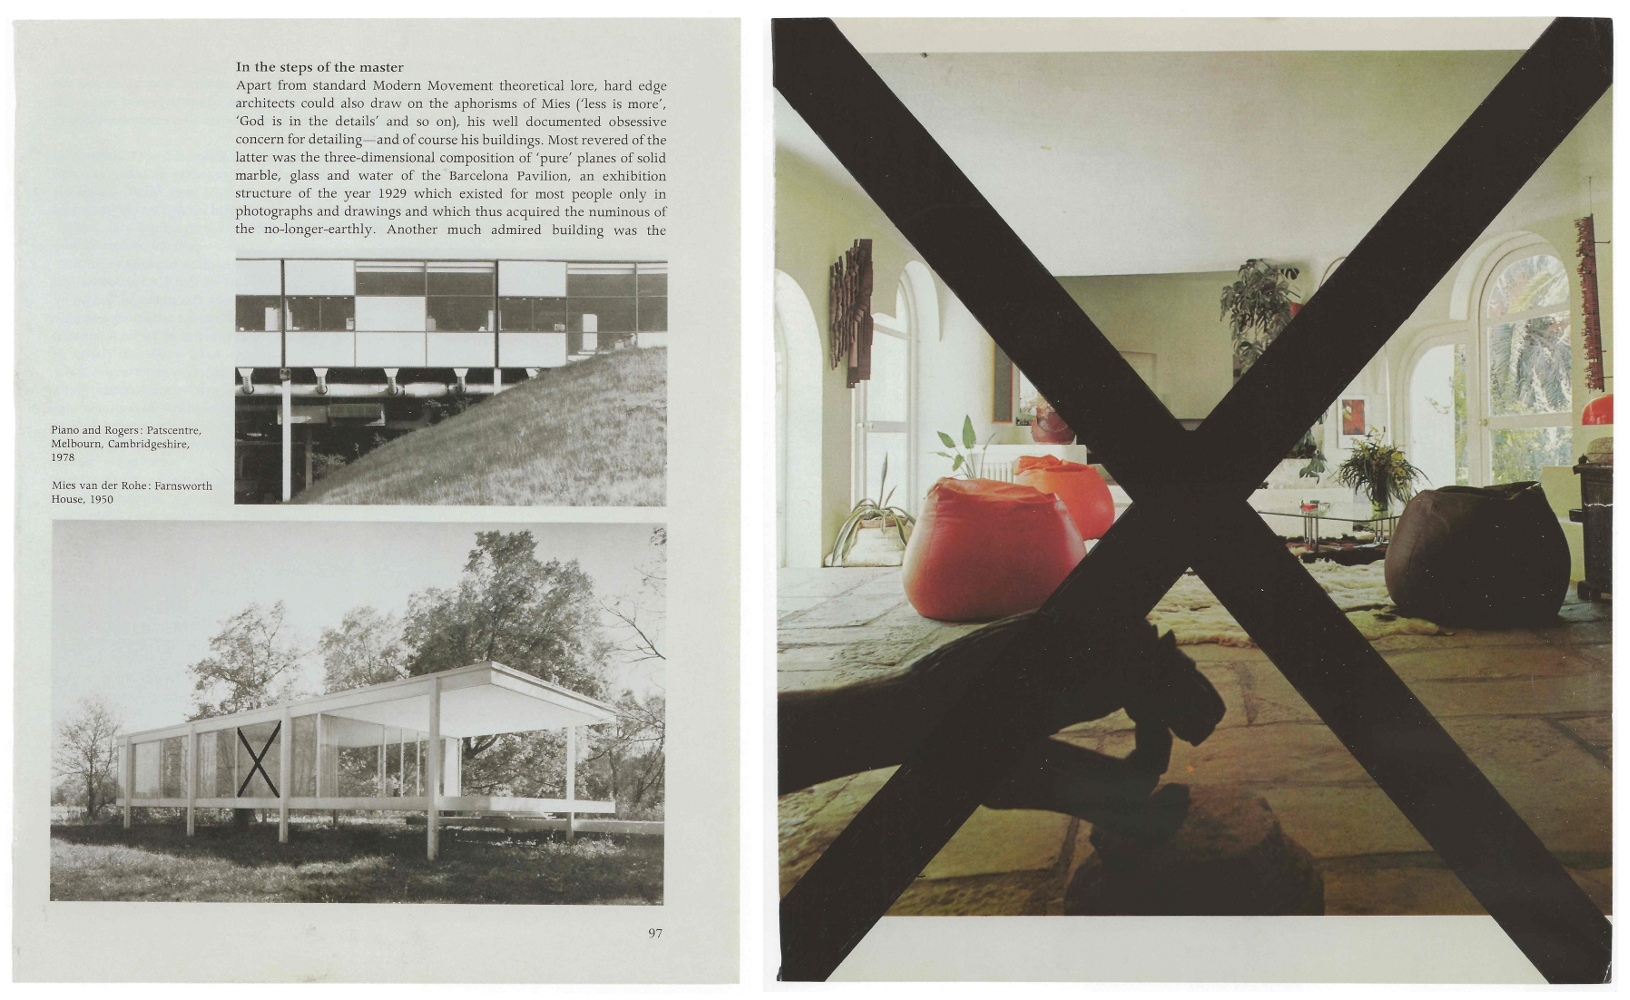 Left: Wade Guyton, Untitled (In the steps of the master), 2002, felt-tip pen on book page, 9½ x 7¼ in. Collection of the artist. Image courtesy Scott Rothkopf, Wade Guyton OS, exhibition catalog (New Haven: Yale University Press, 2012): 53. Right: Wade Guyton, Untitled, 2002, felt-tip pen on book page, 11 x 9¼ in. Collection of Candy and Michael Barasch. Image courtesy Scott Rothkopf, Wade Guyton OS, exhibition catalog (New Haven: Yale University Press, 2012): 55.